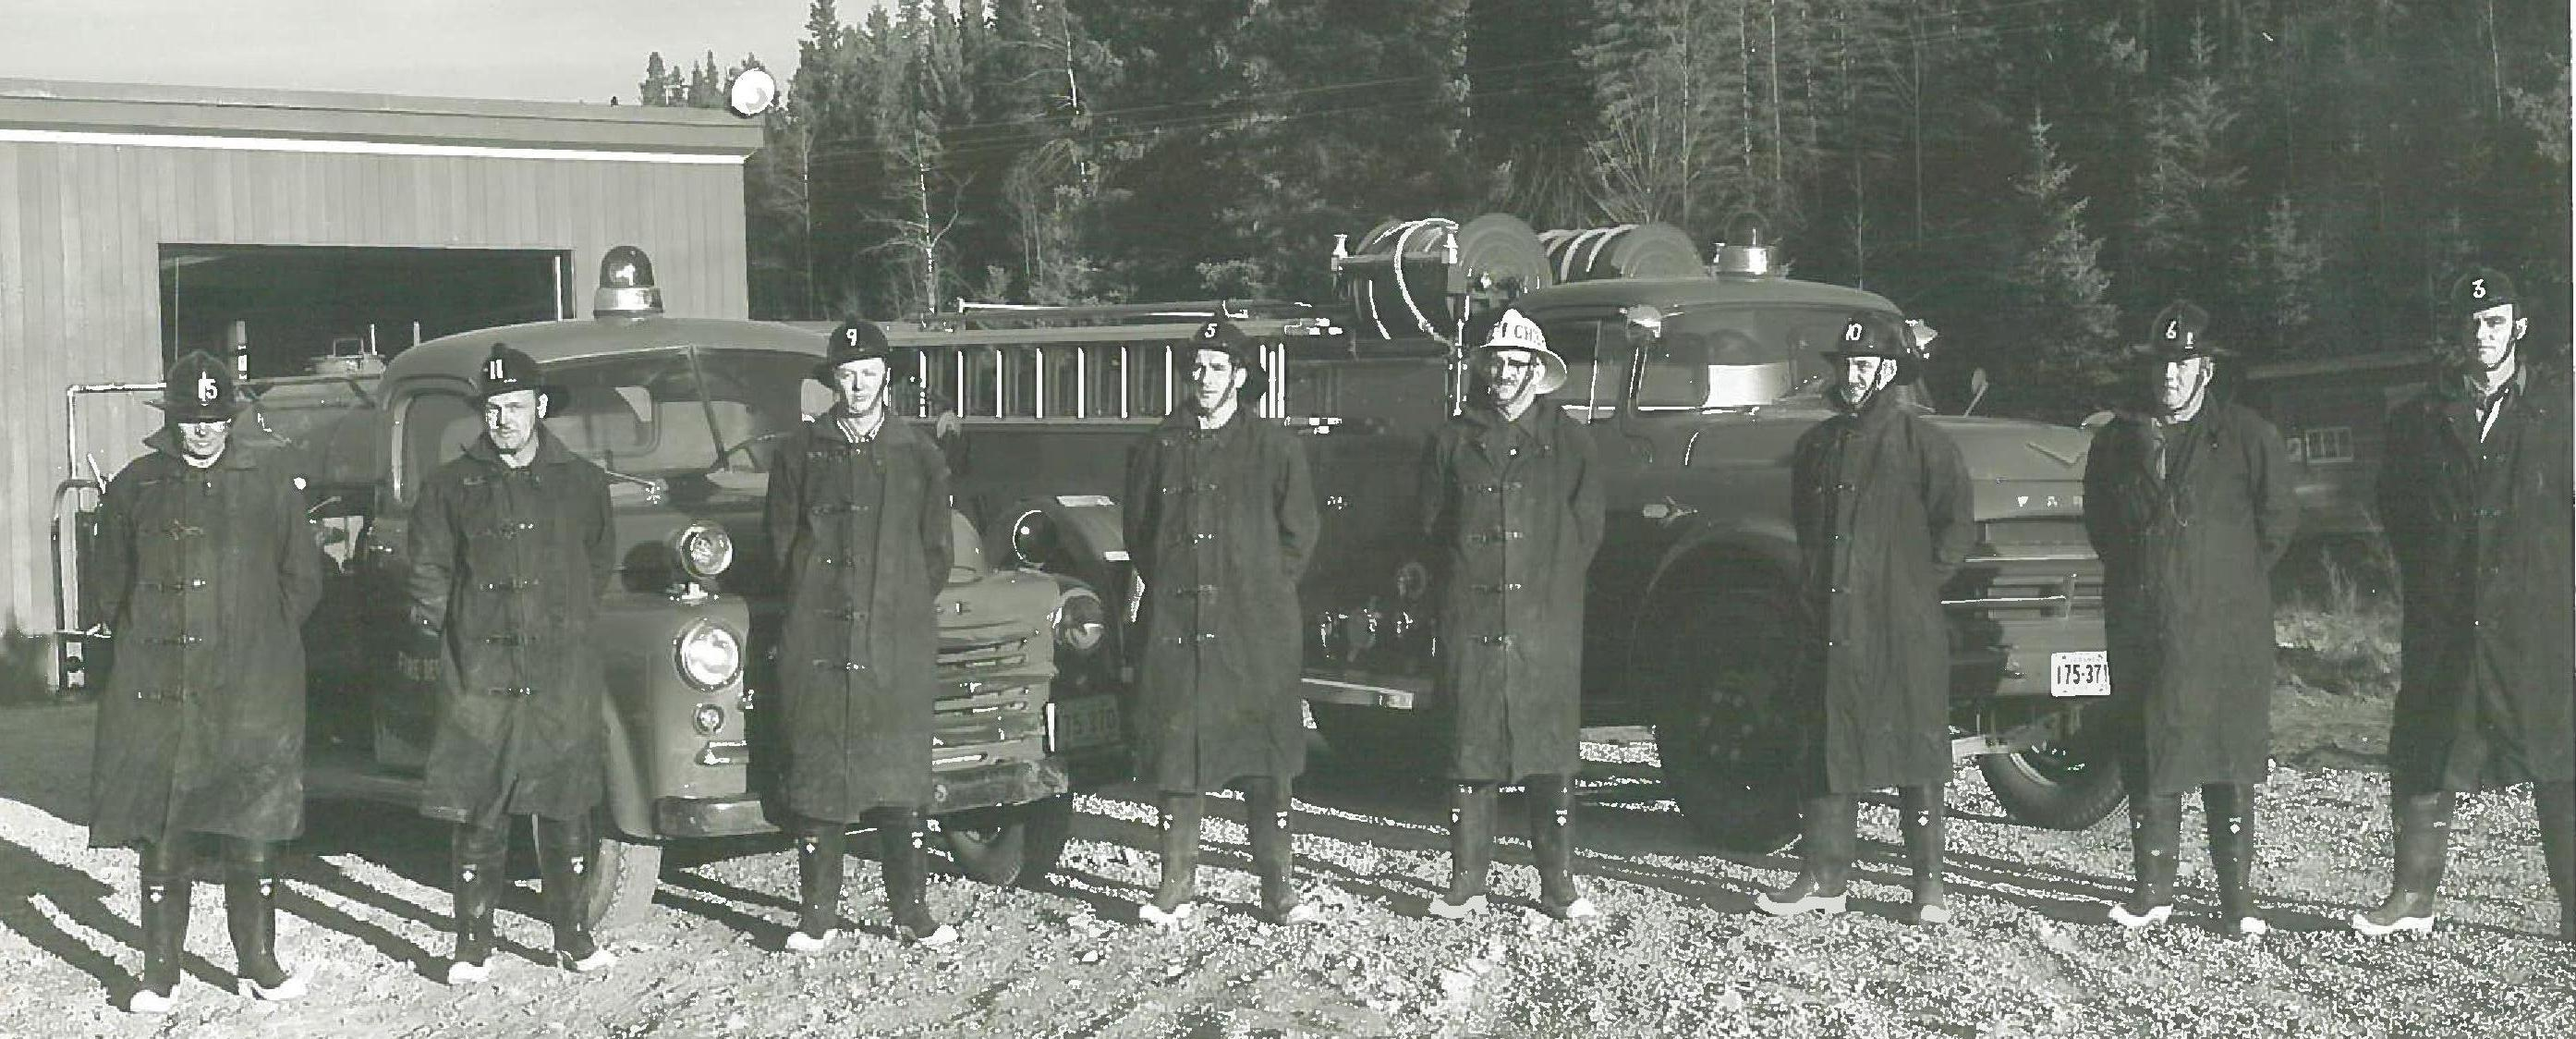 Old historical photo of 8 firefighters in front of some old fire trucks.